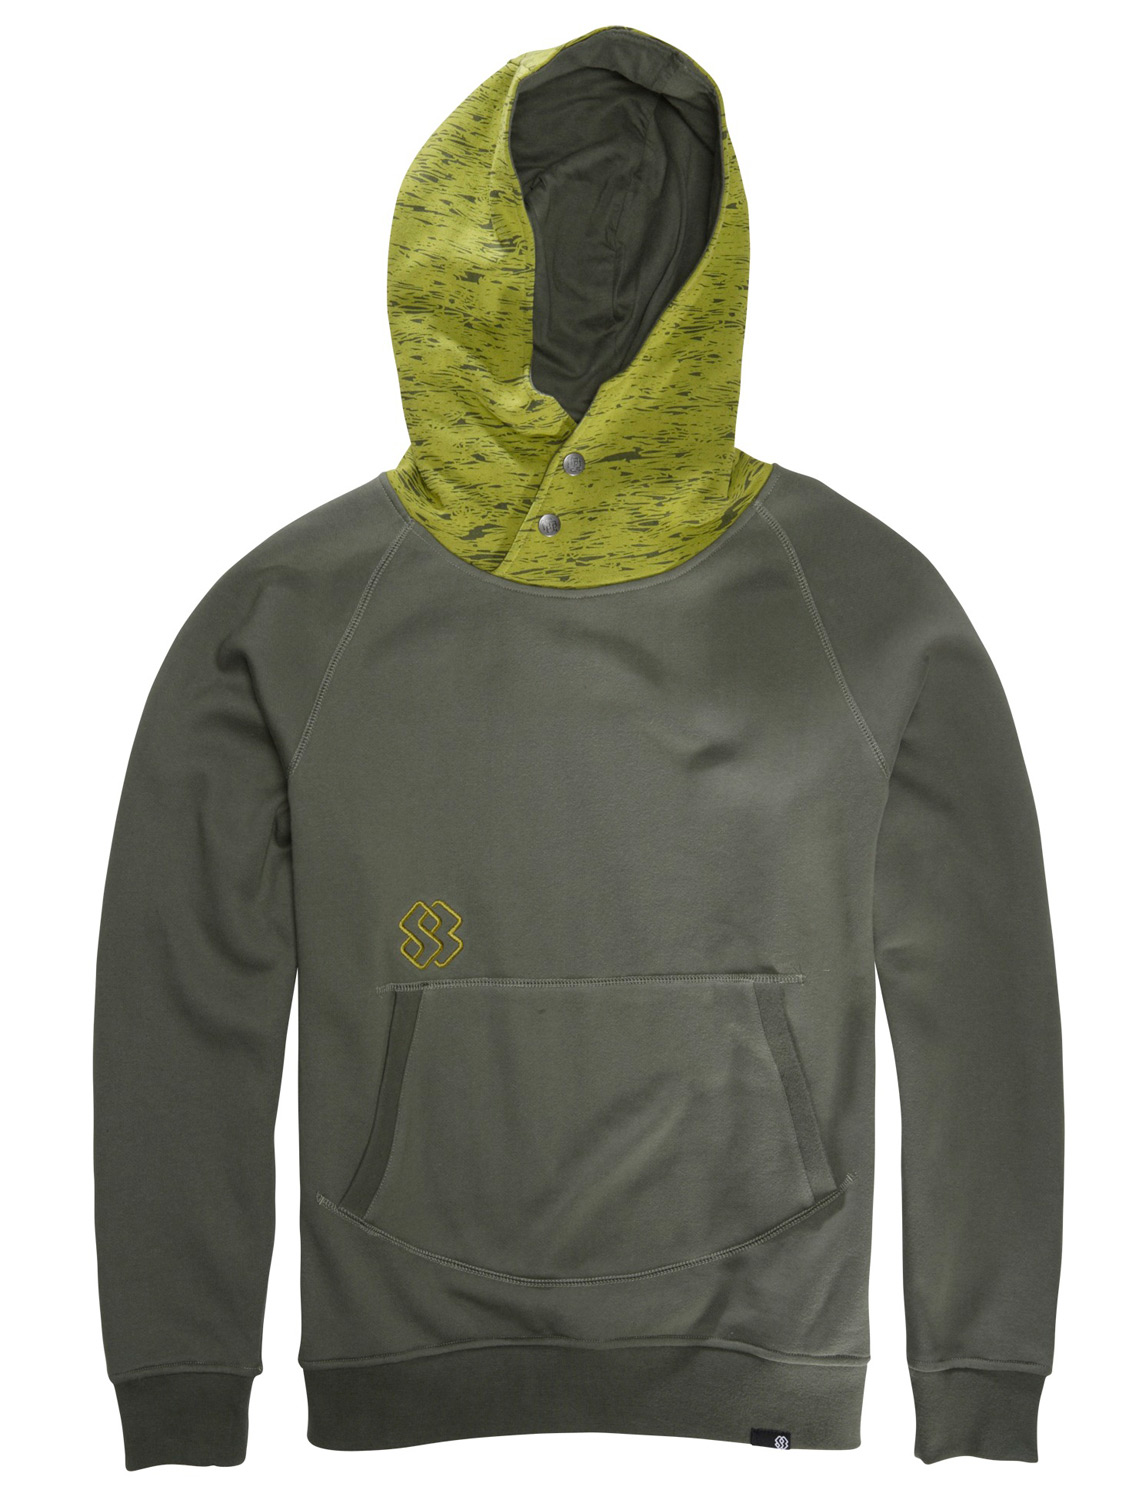 Pullover hoodie with scarf style hoodKey Features of the Special Blend James Pullover Hoodie: - $22.36